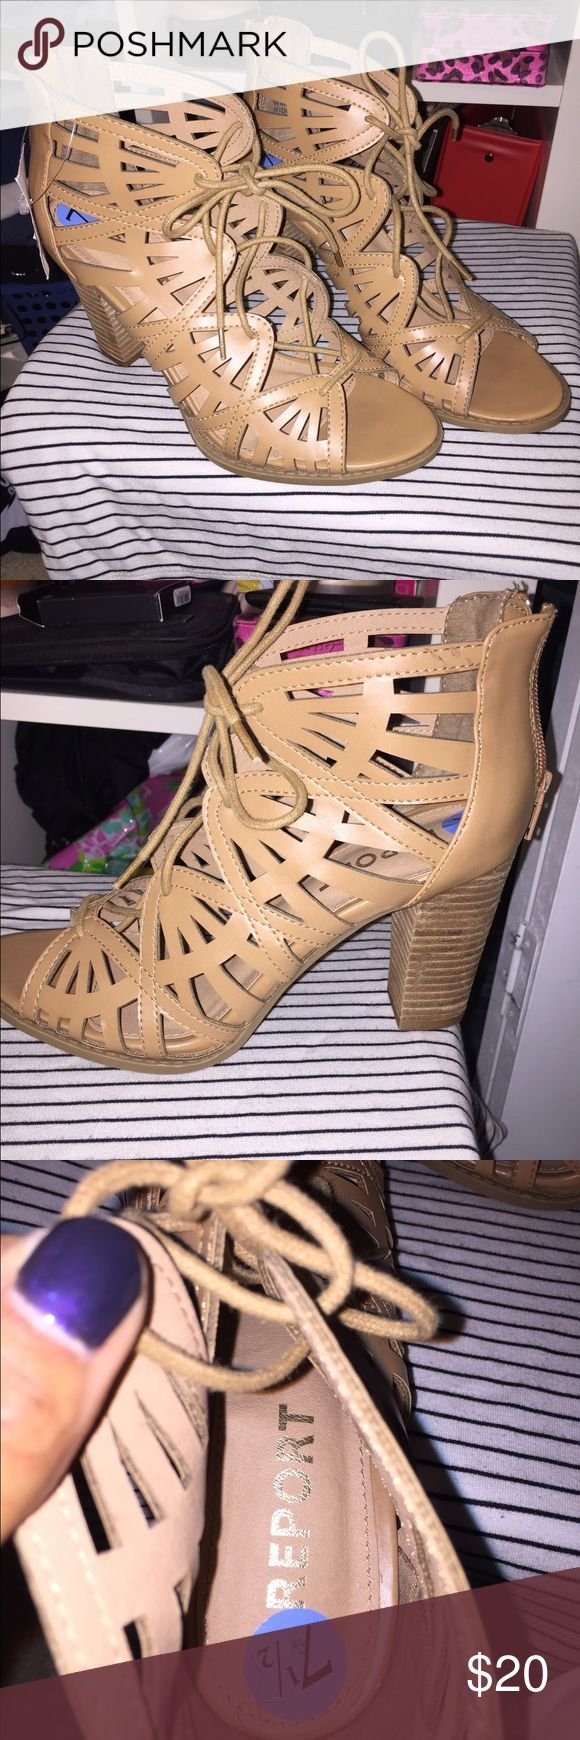 Brown heeled sandals There cute lace up brown sandals great for the summer time. Would be cute with a dress or some jeans and nice shirt. NWT never worn, I bought them, but to big for me. Report Shoes Sandals